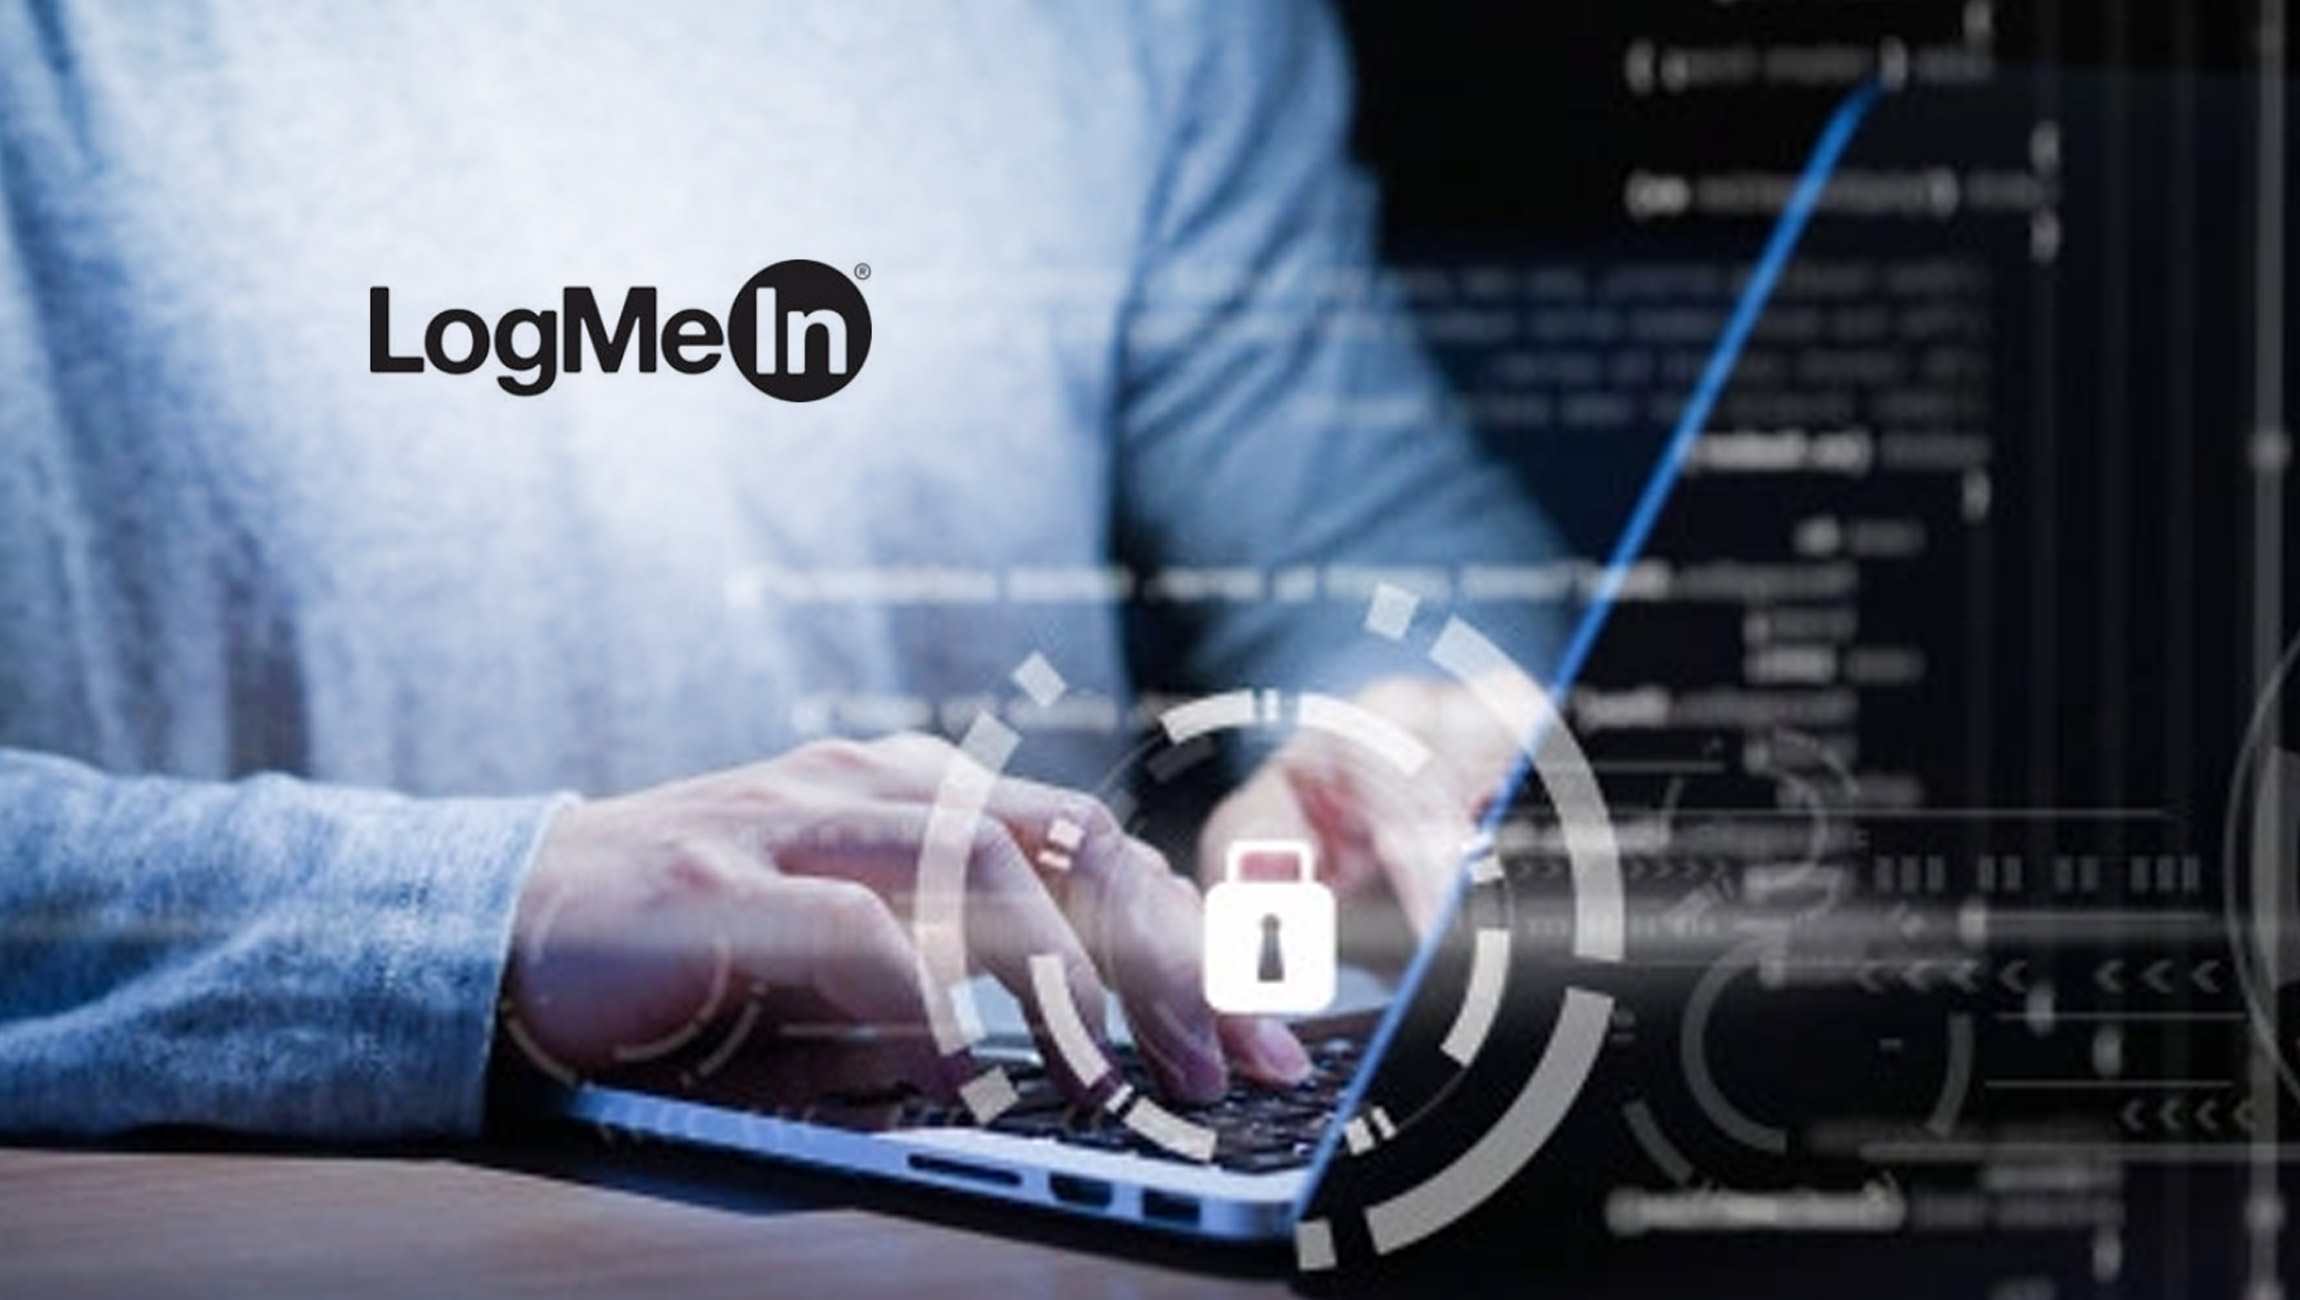 LogMeIn Study Shows Cyber Threats, Productivity Concerns, and Pressure on IT Support Drives Consolidation of Remote Access & Support Solutions as Flexible Work Becomes Business as Usual